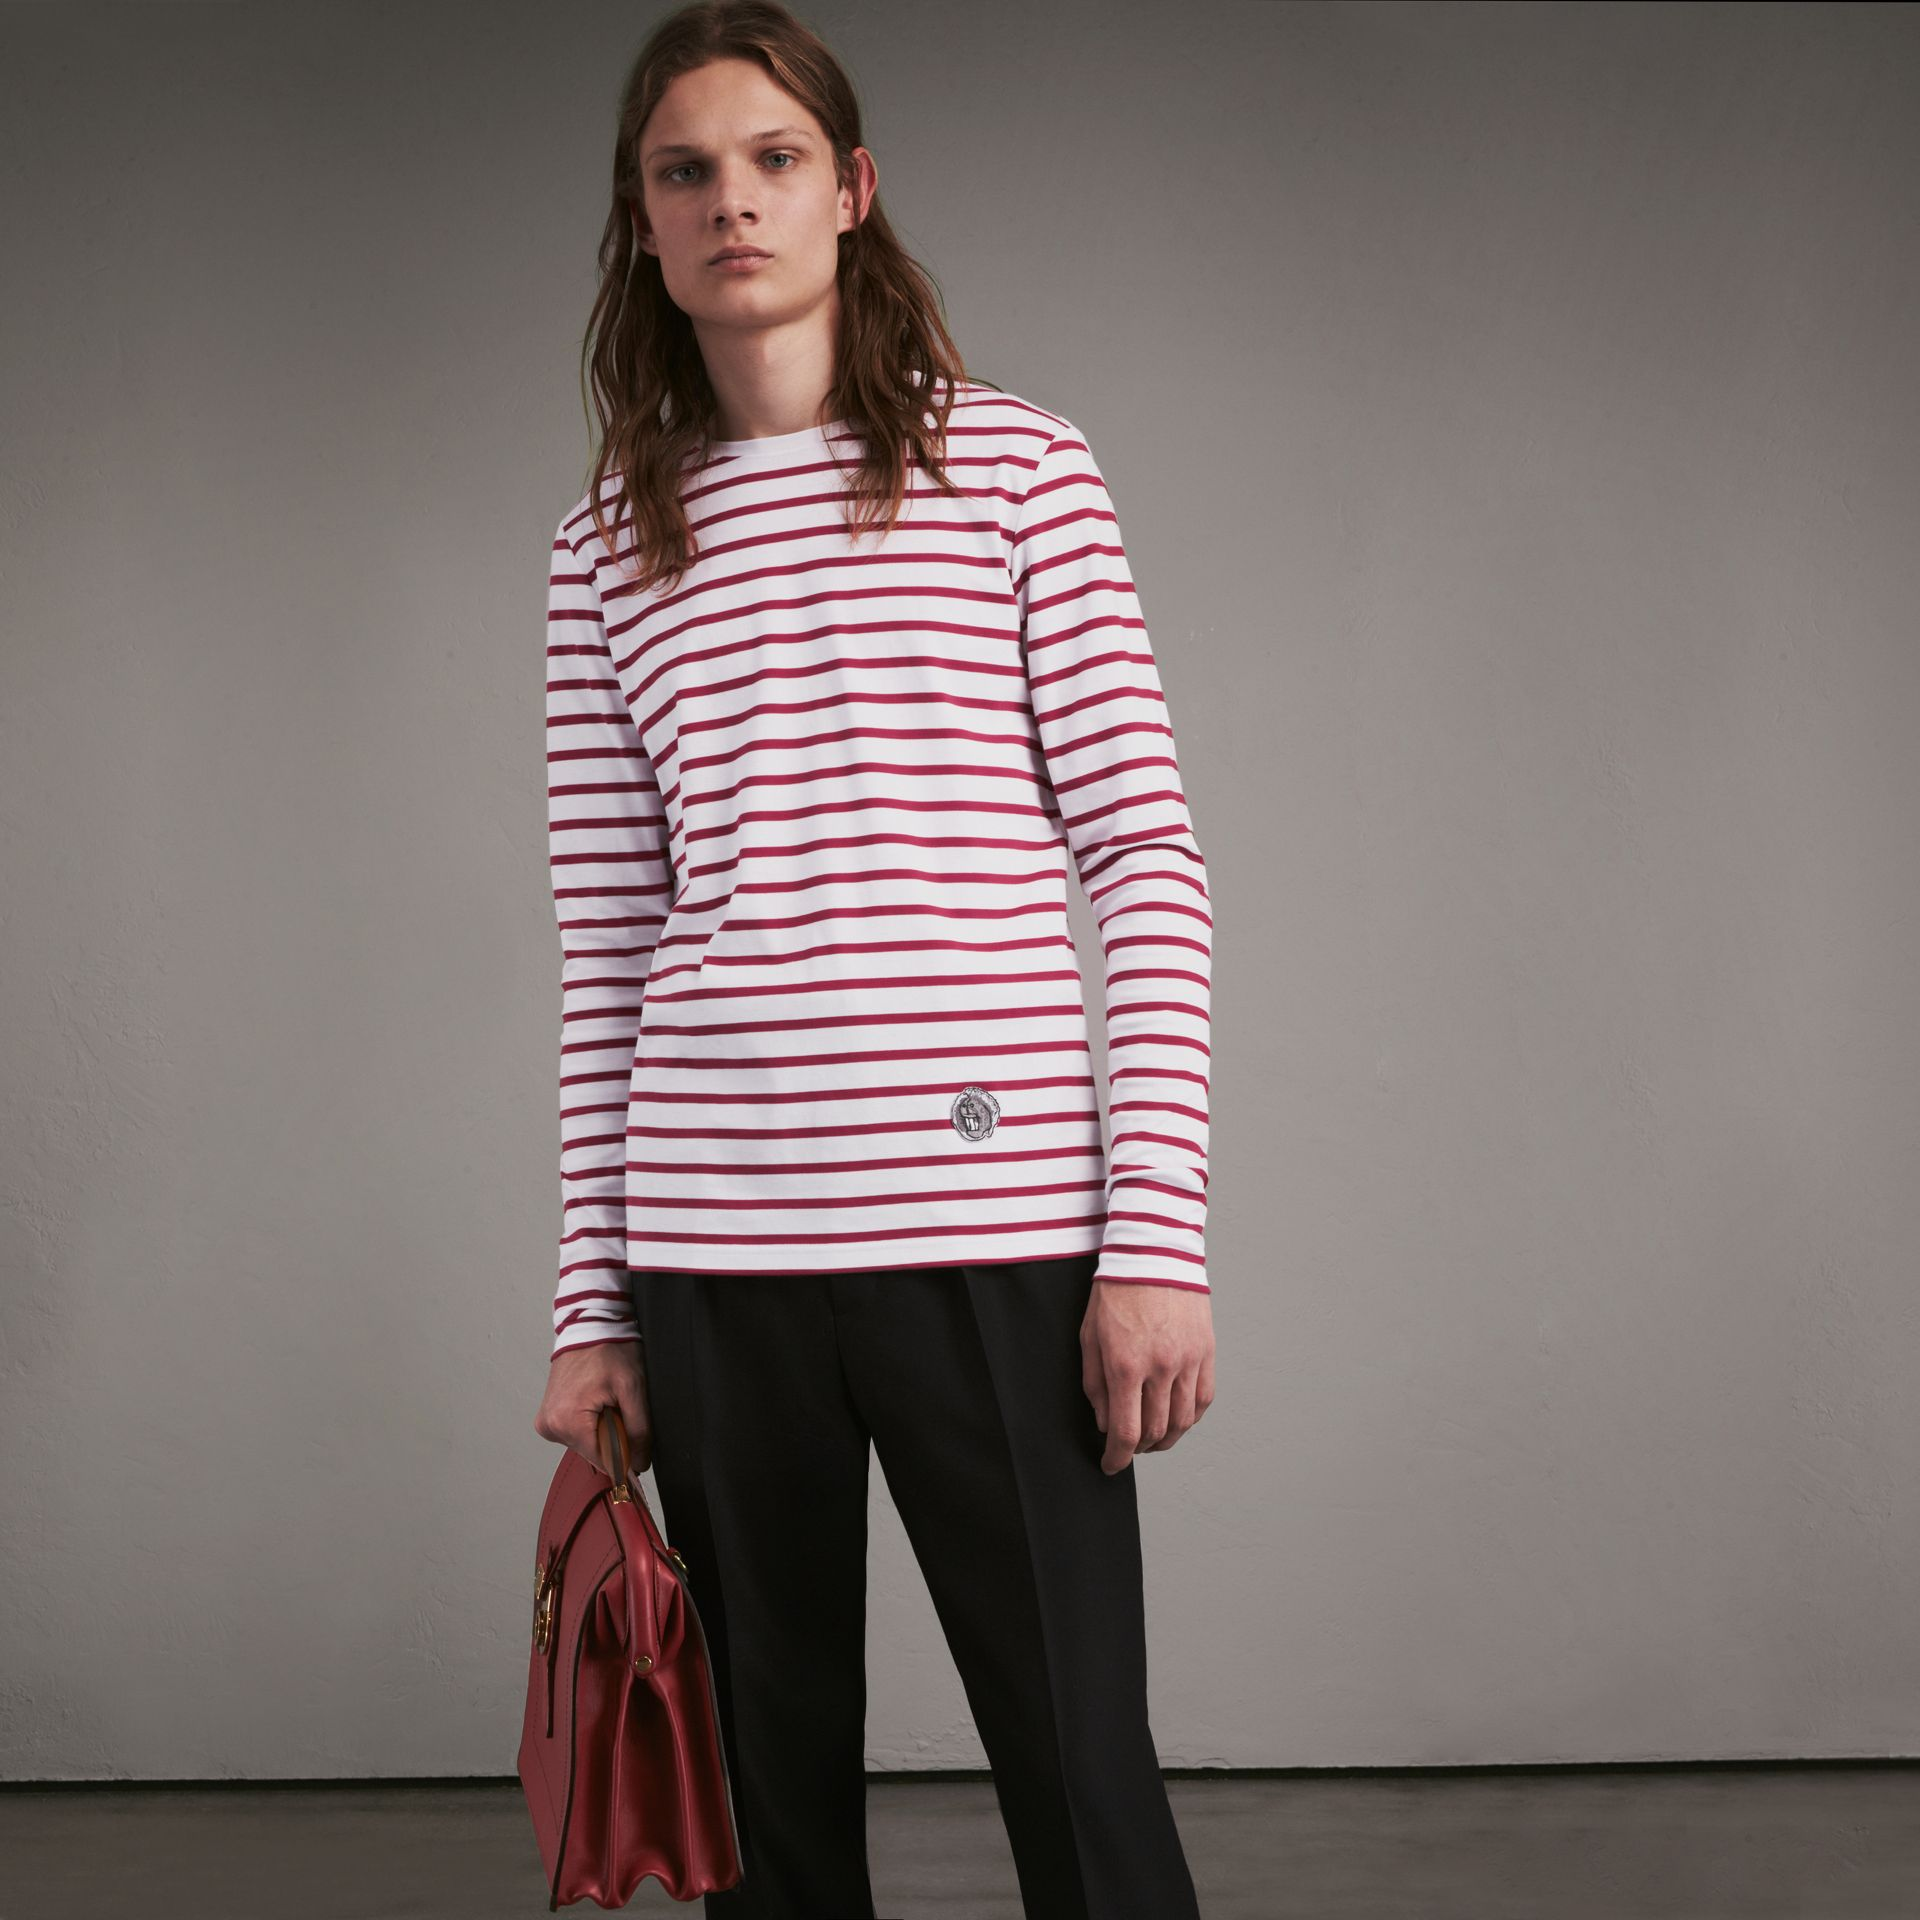 Unisex Pallas Heads Motif Breton Stripe Cotton Top in Parade Red - Men | Burberry - gallery image 0